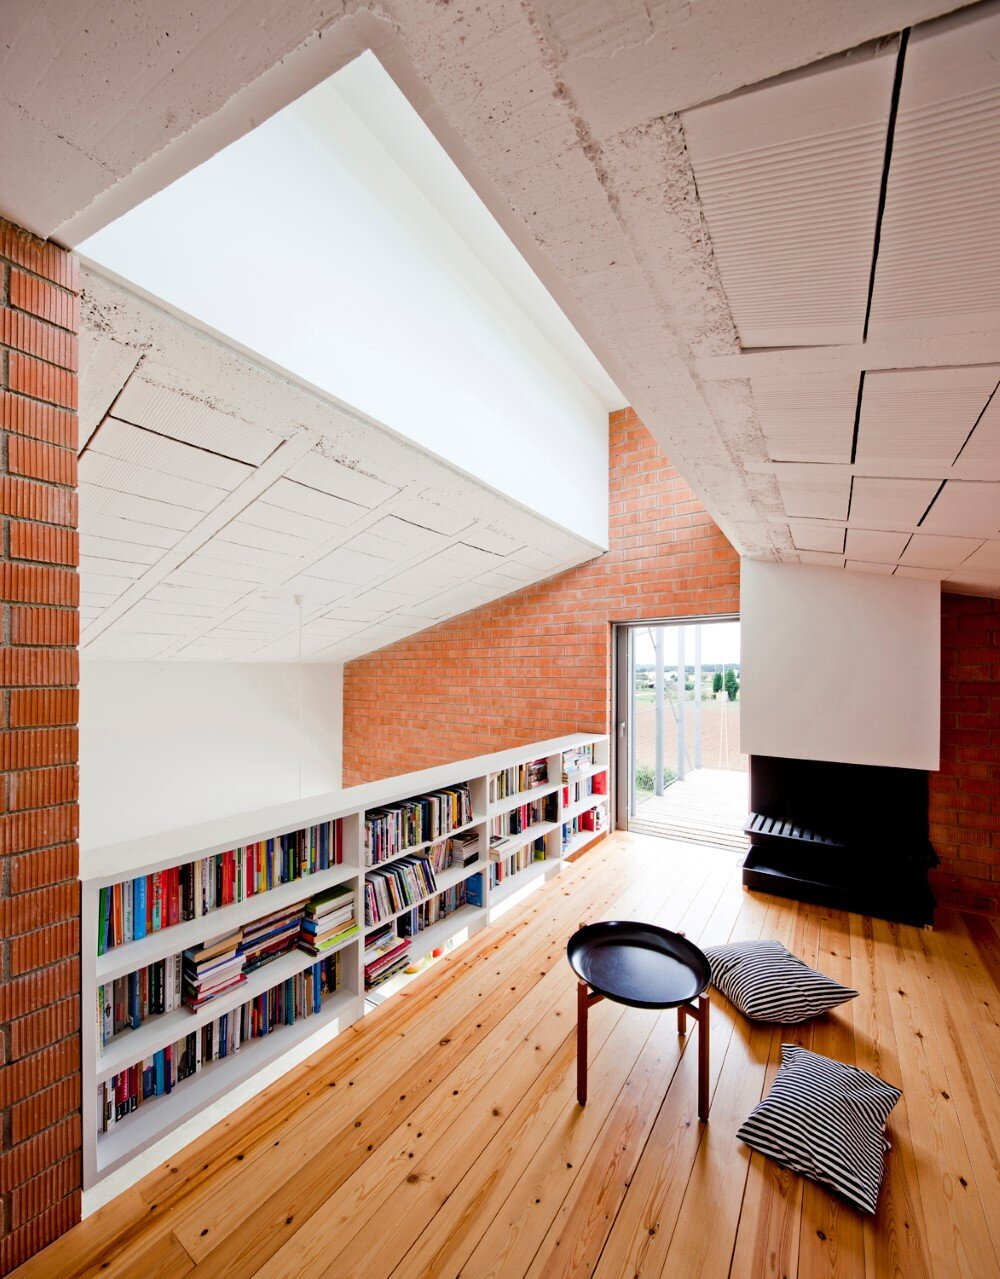 MMMMMS House Provides a Straight Relationship with the Surrounding Landscape (12)